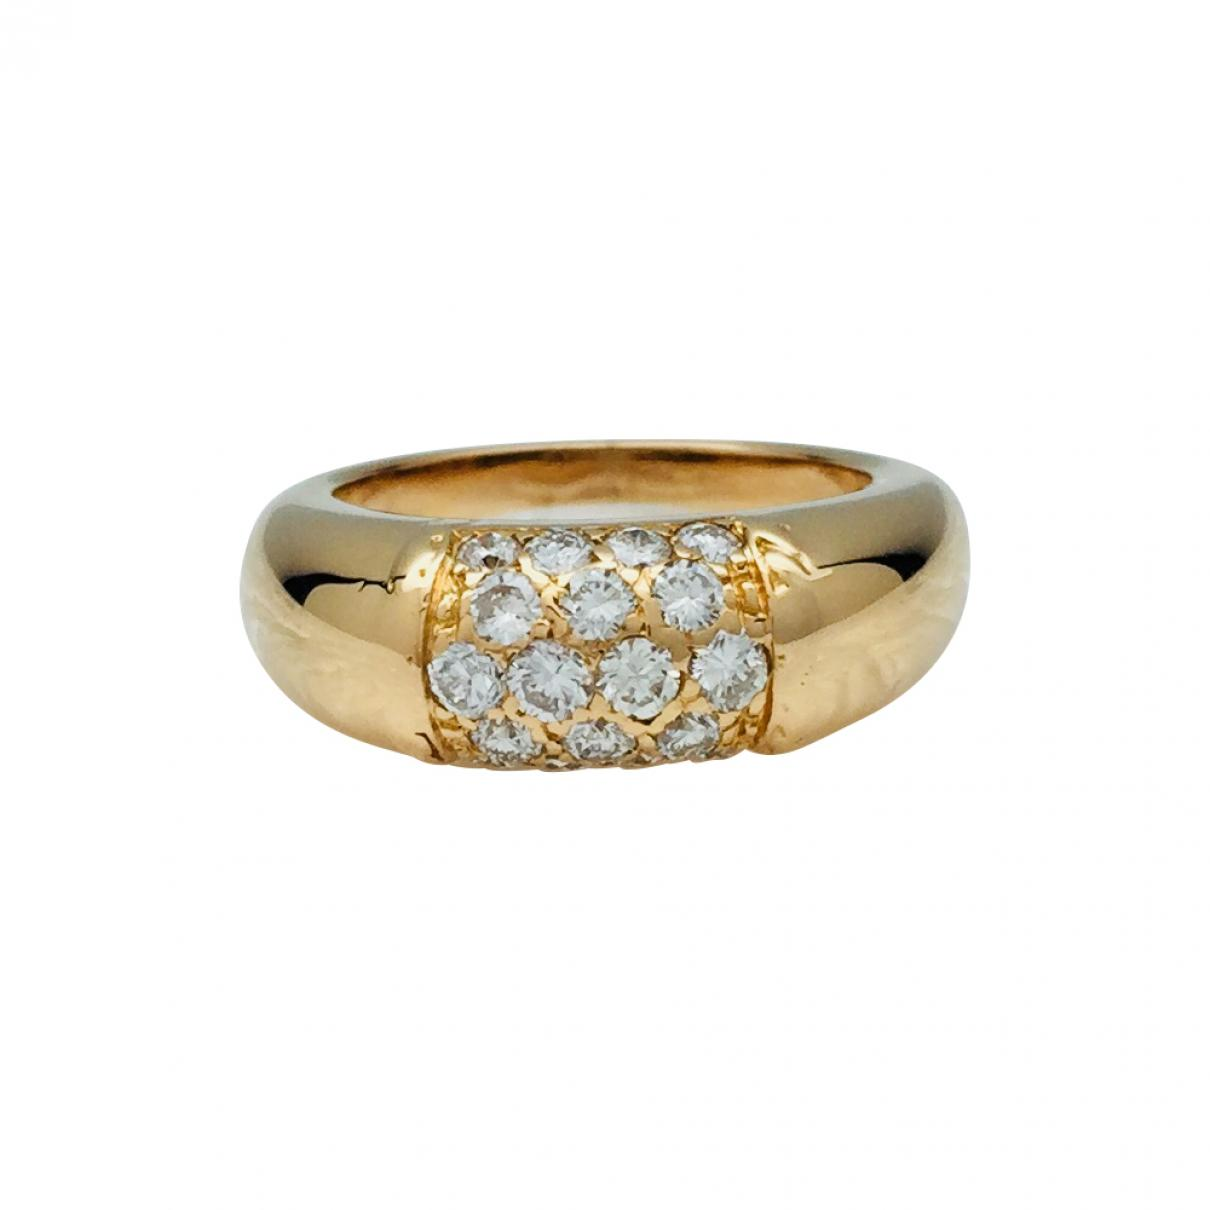 3b84c49d7e443 Van Cleef   Arpels Pre-owned Vintage Philippine Other Yellow Gold ...